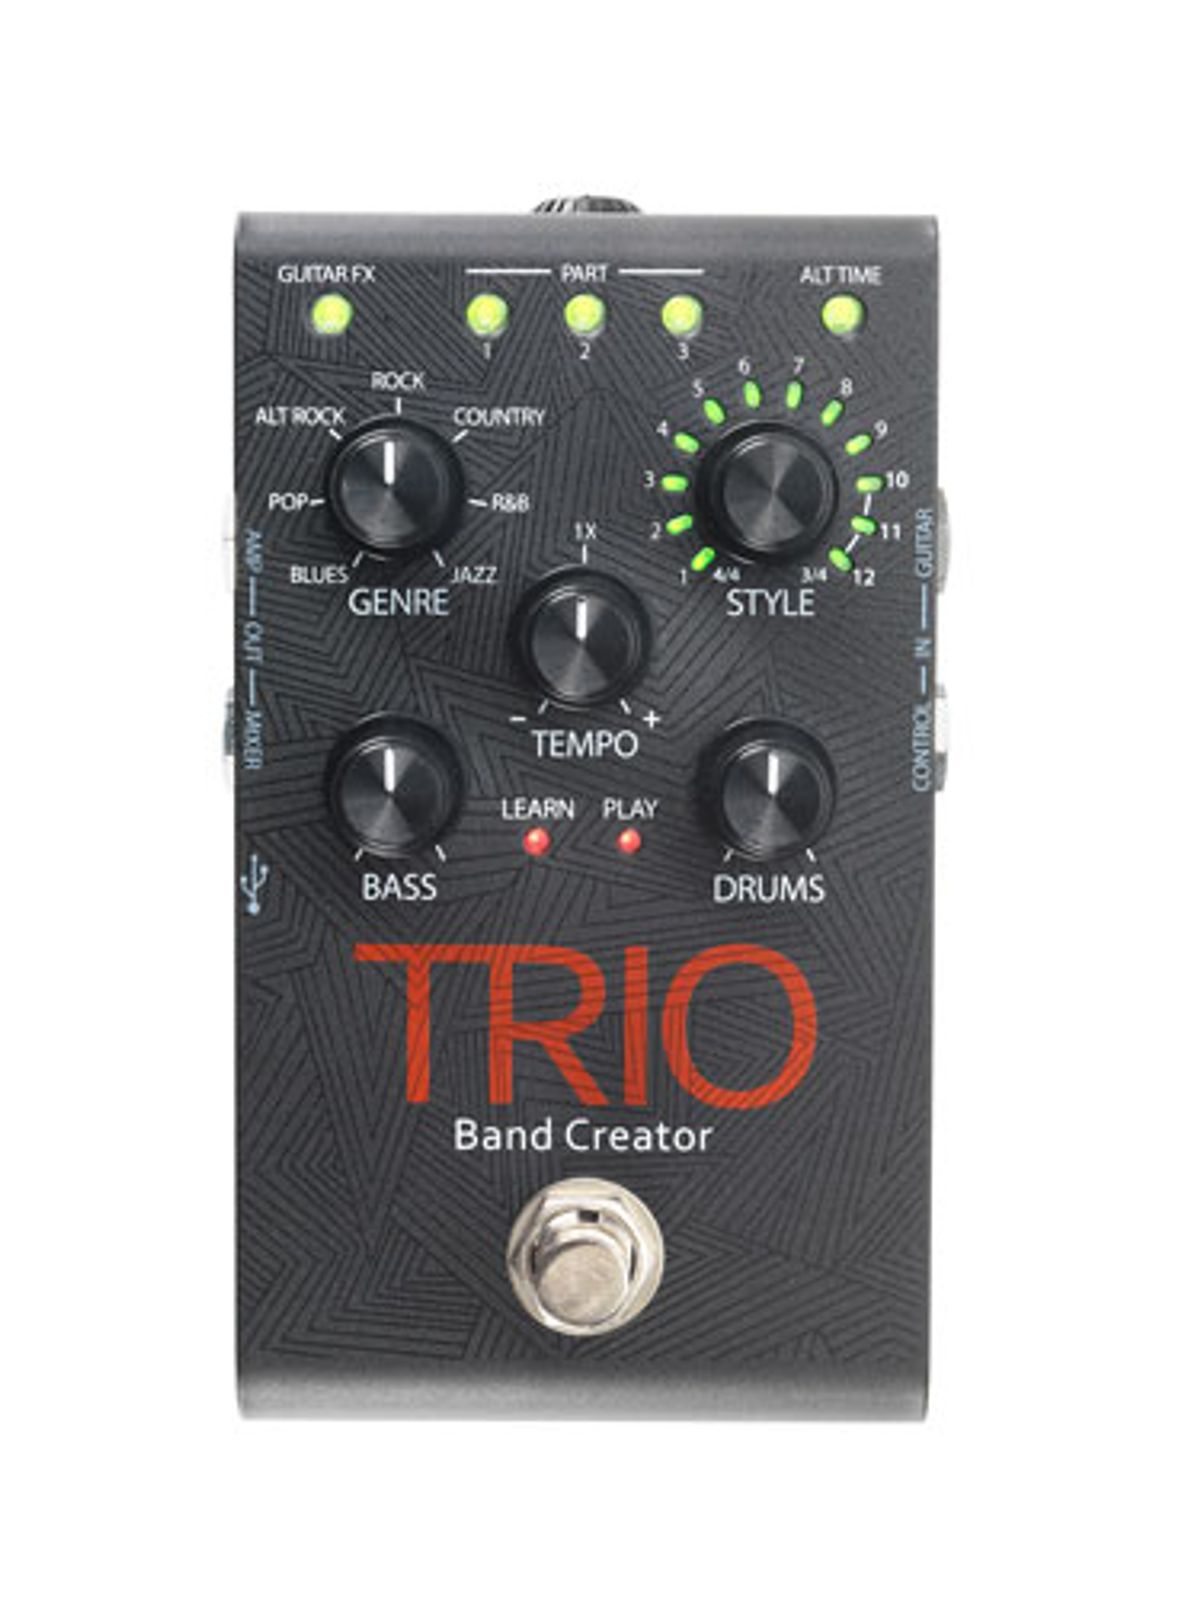 Digitech Releases the Trio Band Creator Pedal